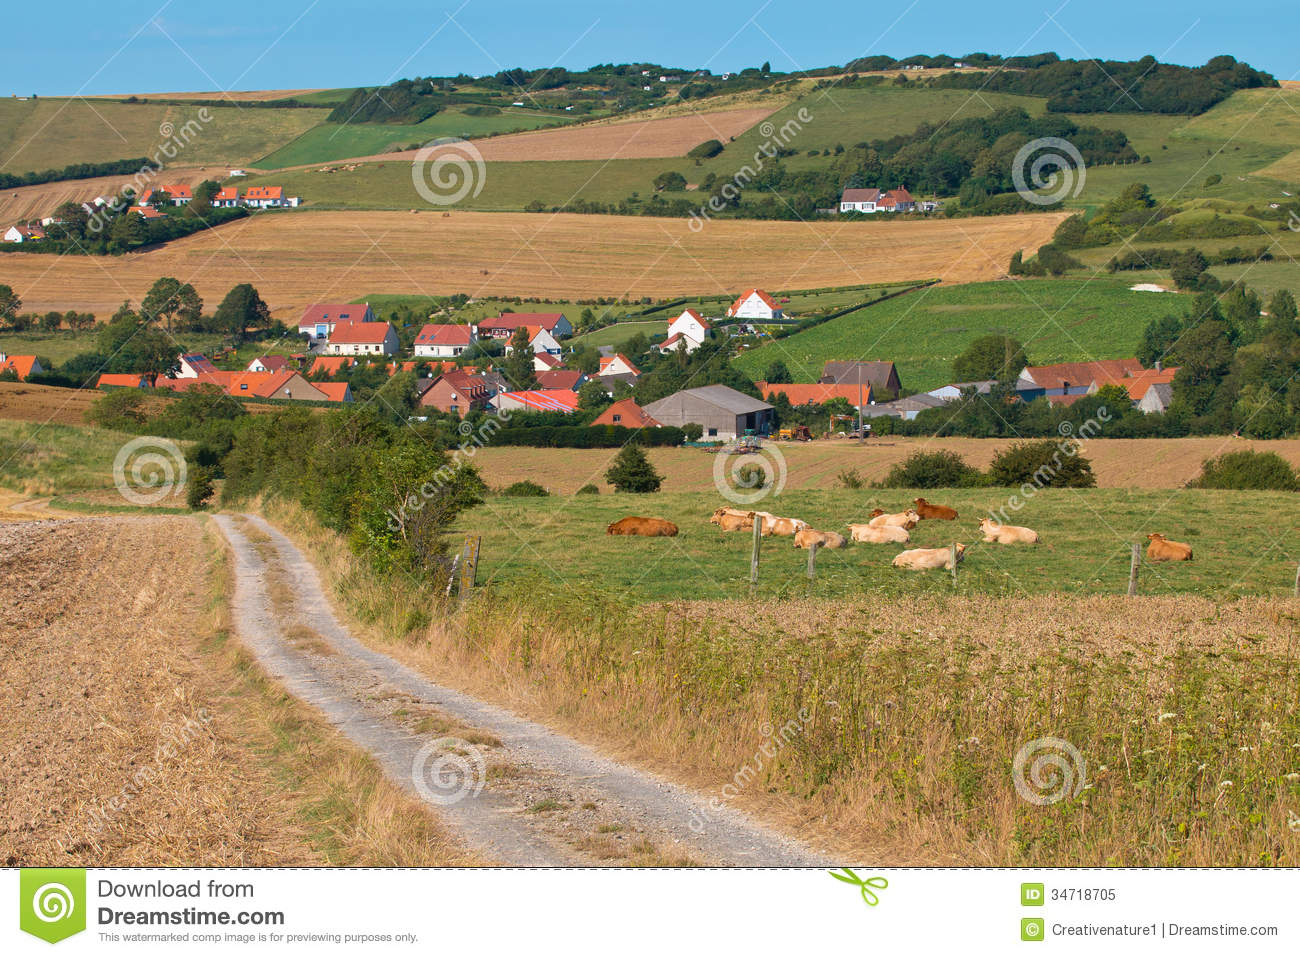 Rural Village In France Royalty Free Stock Photo - Image: 34718705